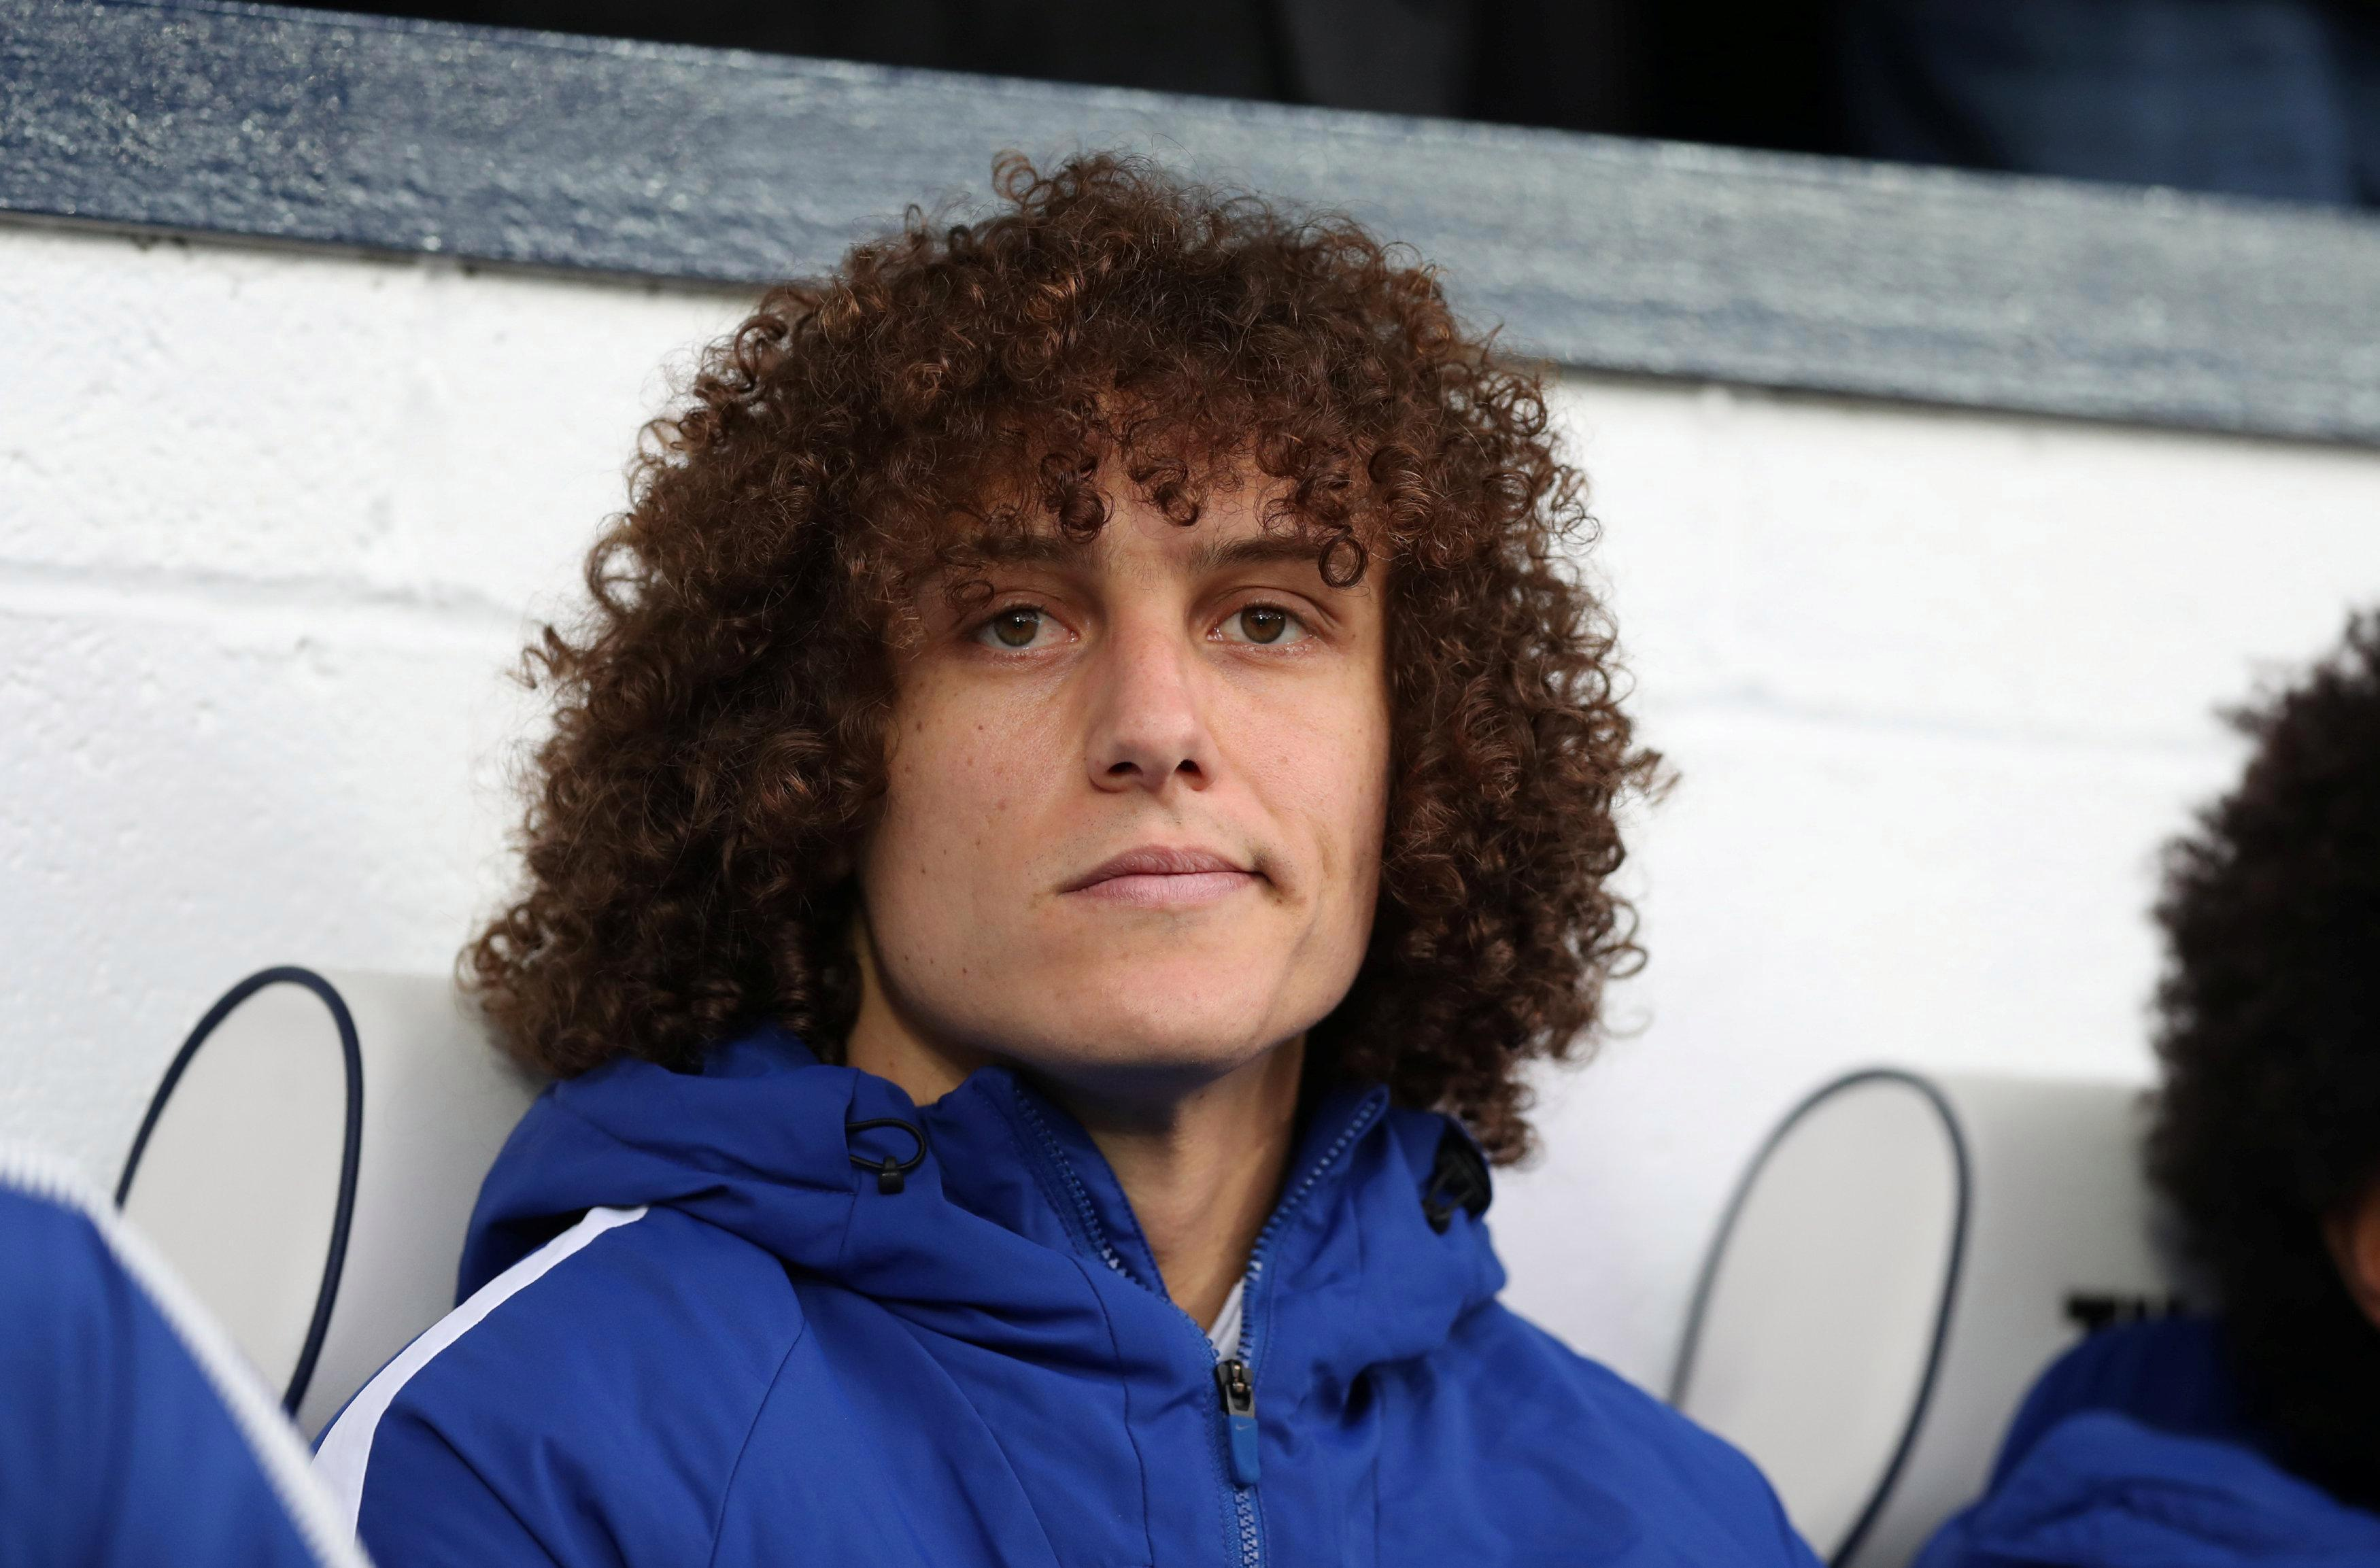 David Luiz targets Chelsea comeback against Tottenham on April Fool's Day